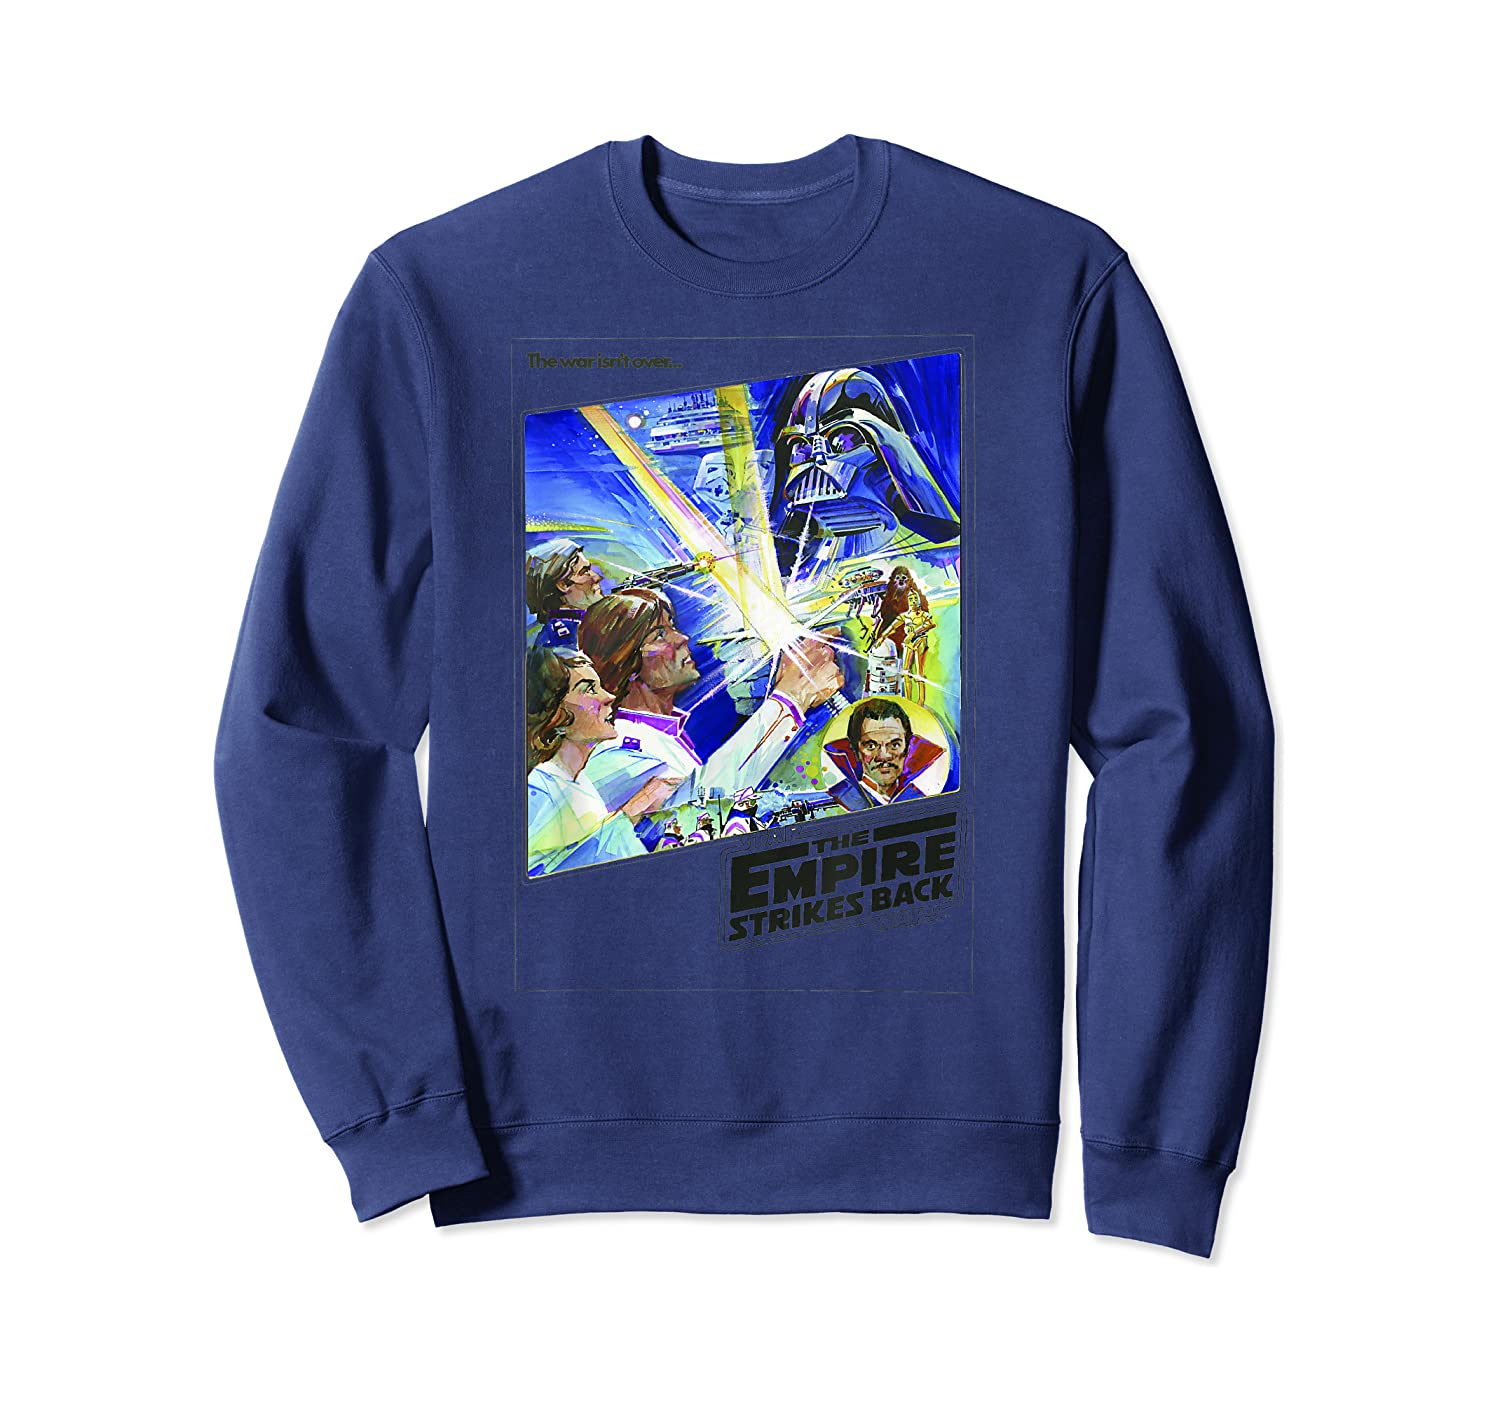 Star Wars The Empire Strikes Back The War Isn't Over Poster T-shirt Crewneck Sweater